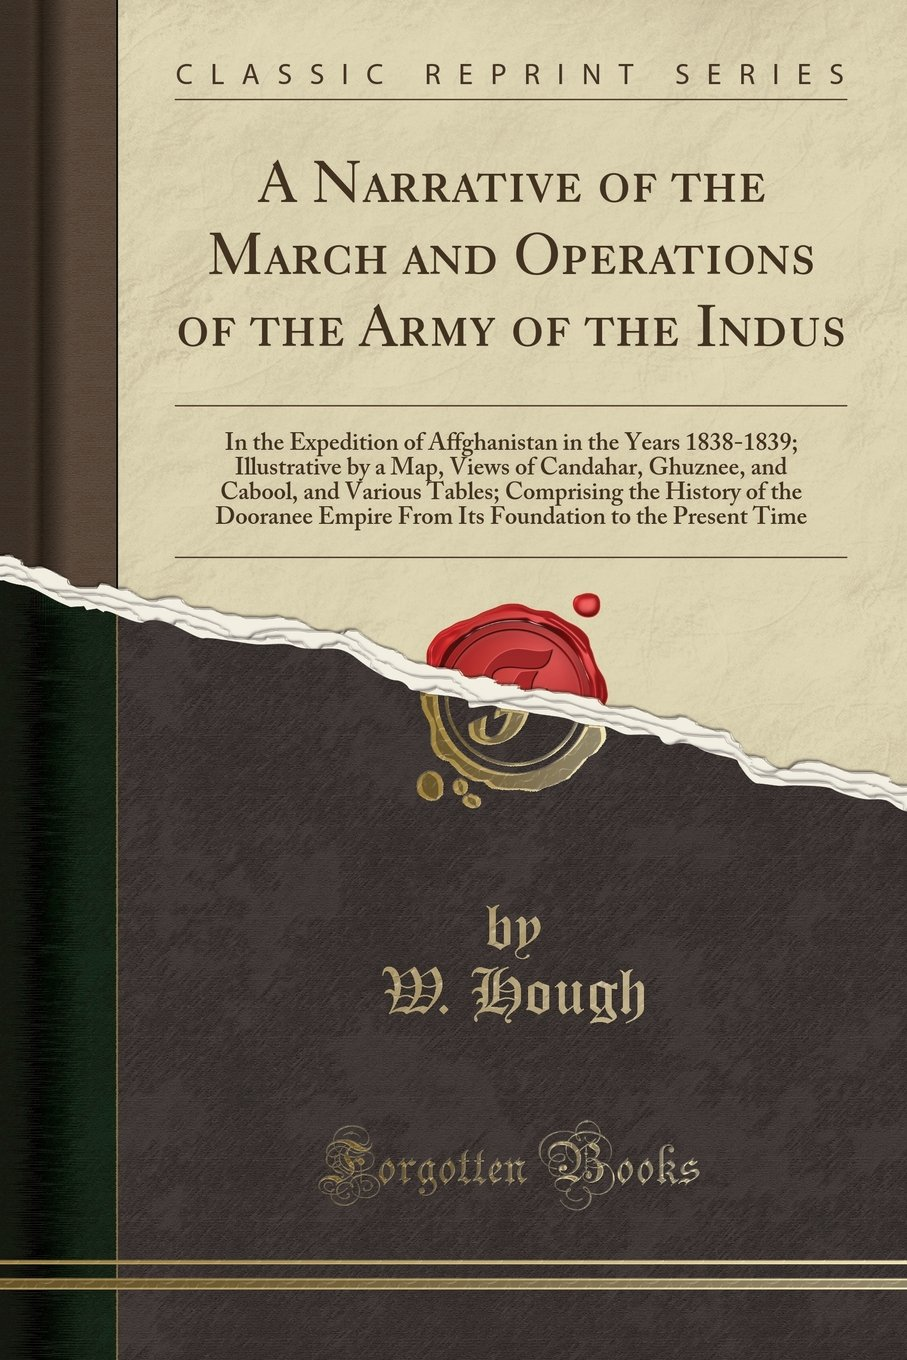 Download A Narrative of the March and Operations of the Army of the Indus: In the Expedition of Affghanistan in the Years 1838-1839; Illustrative by a Map, ... the History of the Dooranee Empire Fr pdf epub